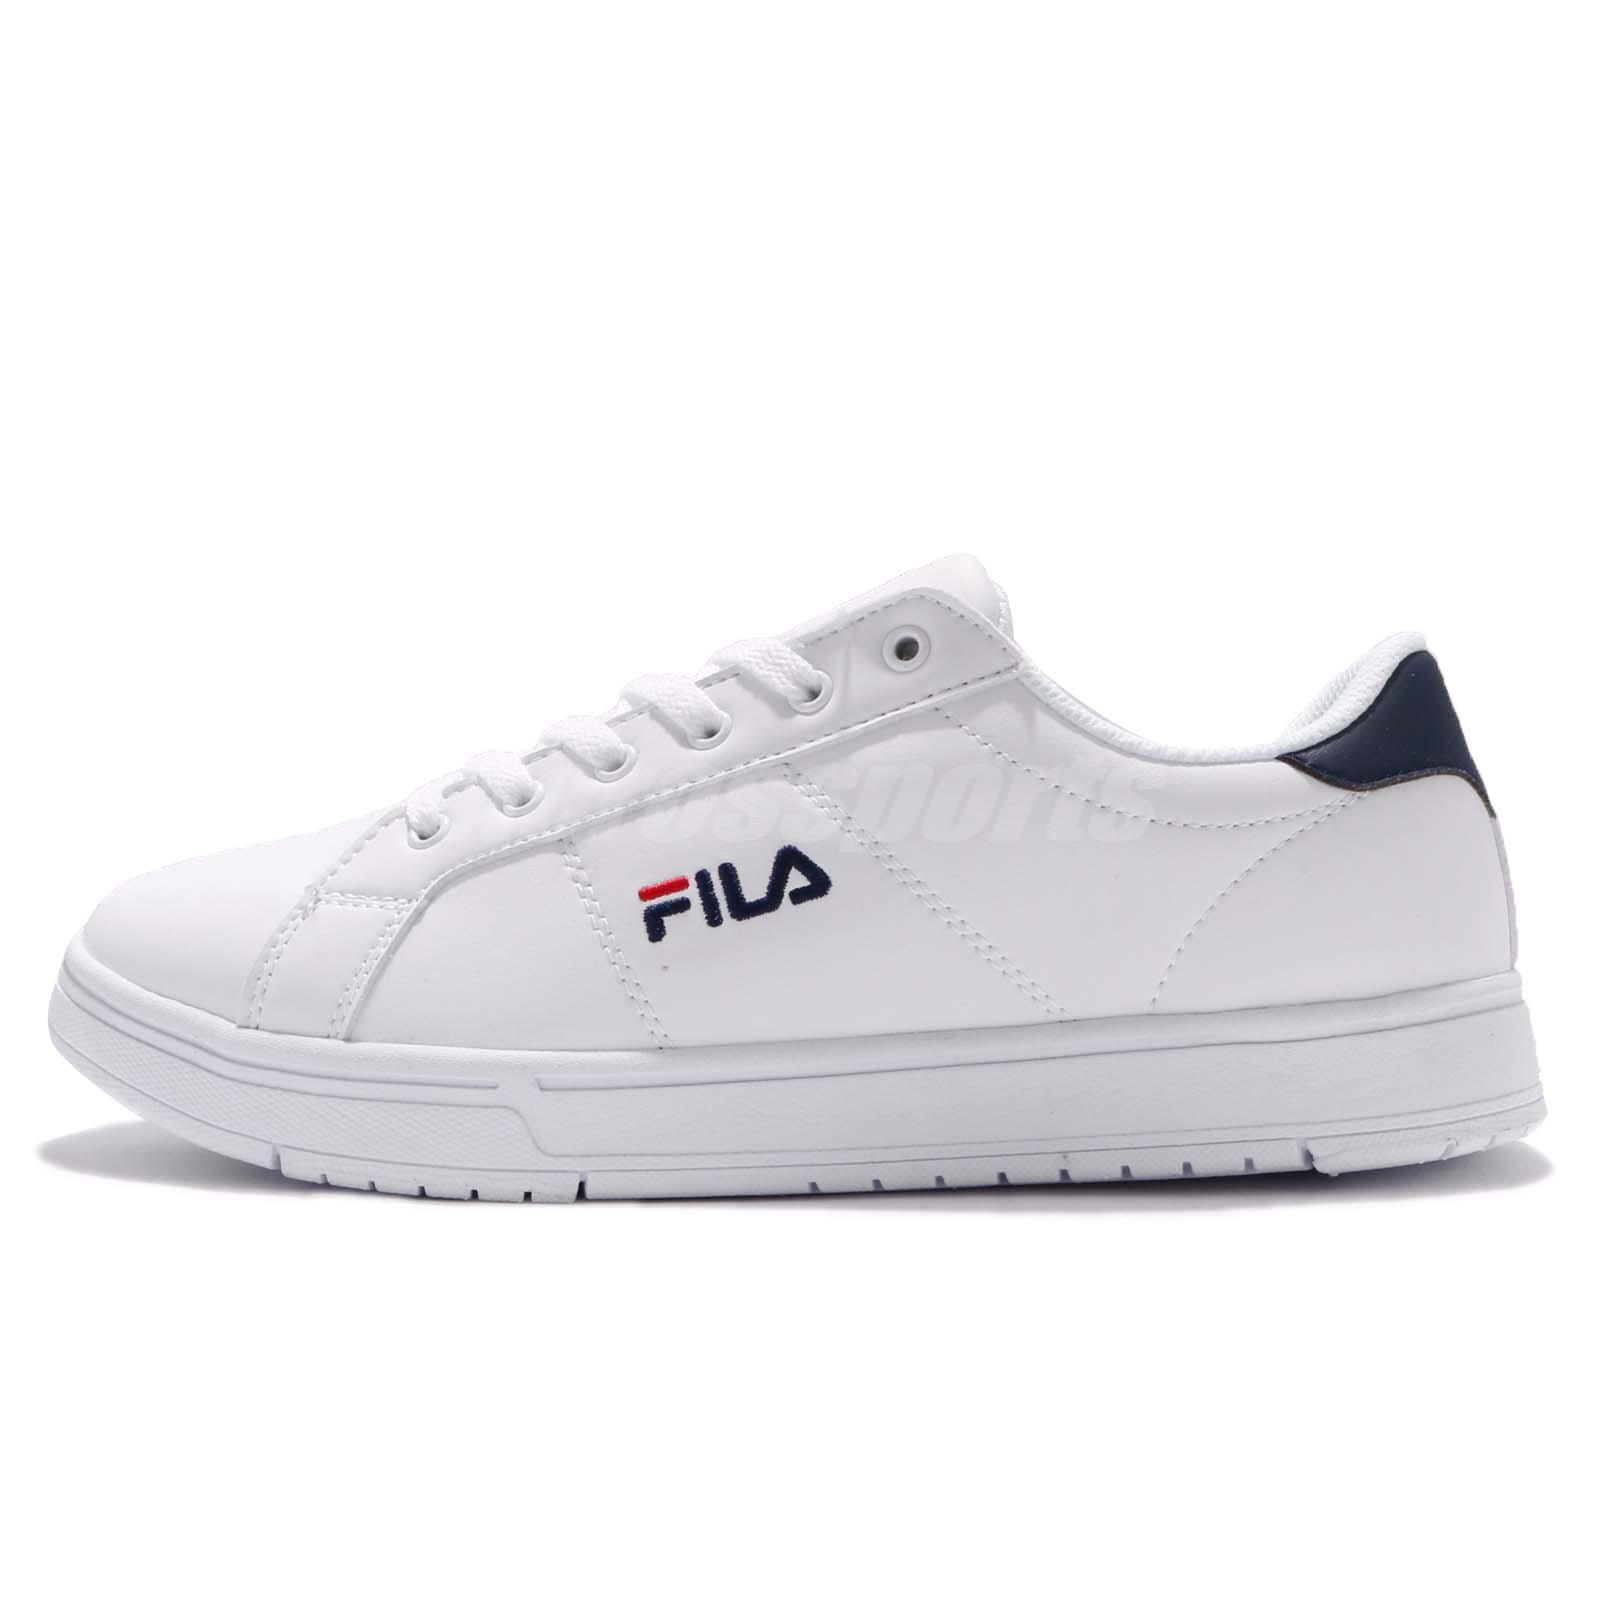 241516db0b95 Fila C322S Low Cut White Navy Men Casual Shoes Sneakers